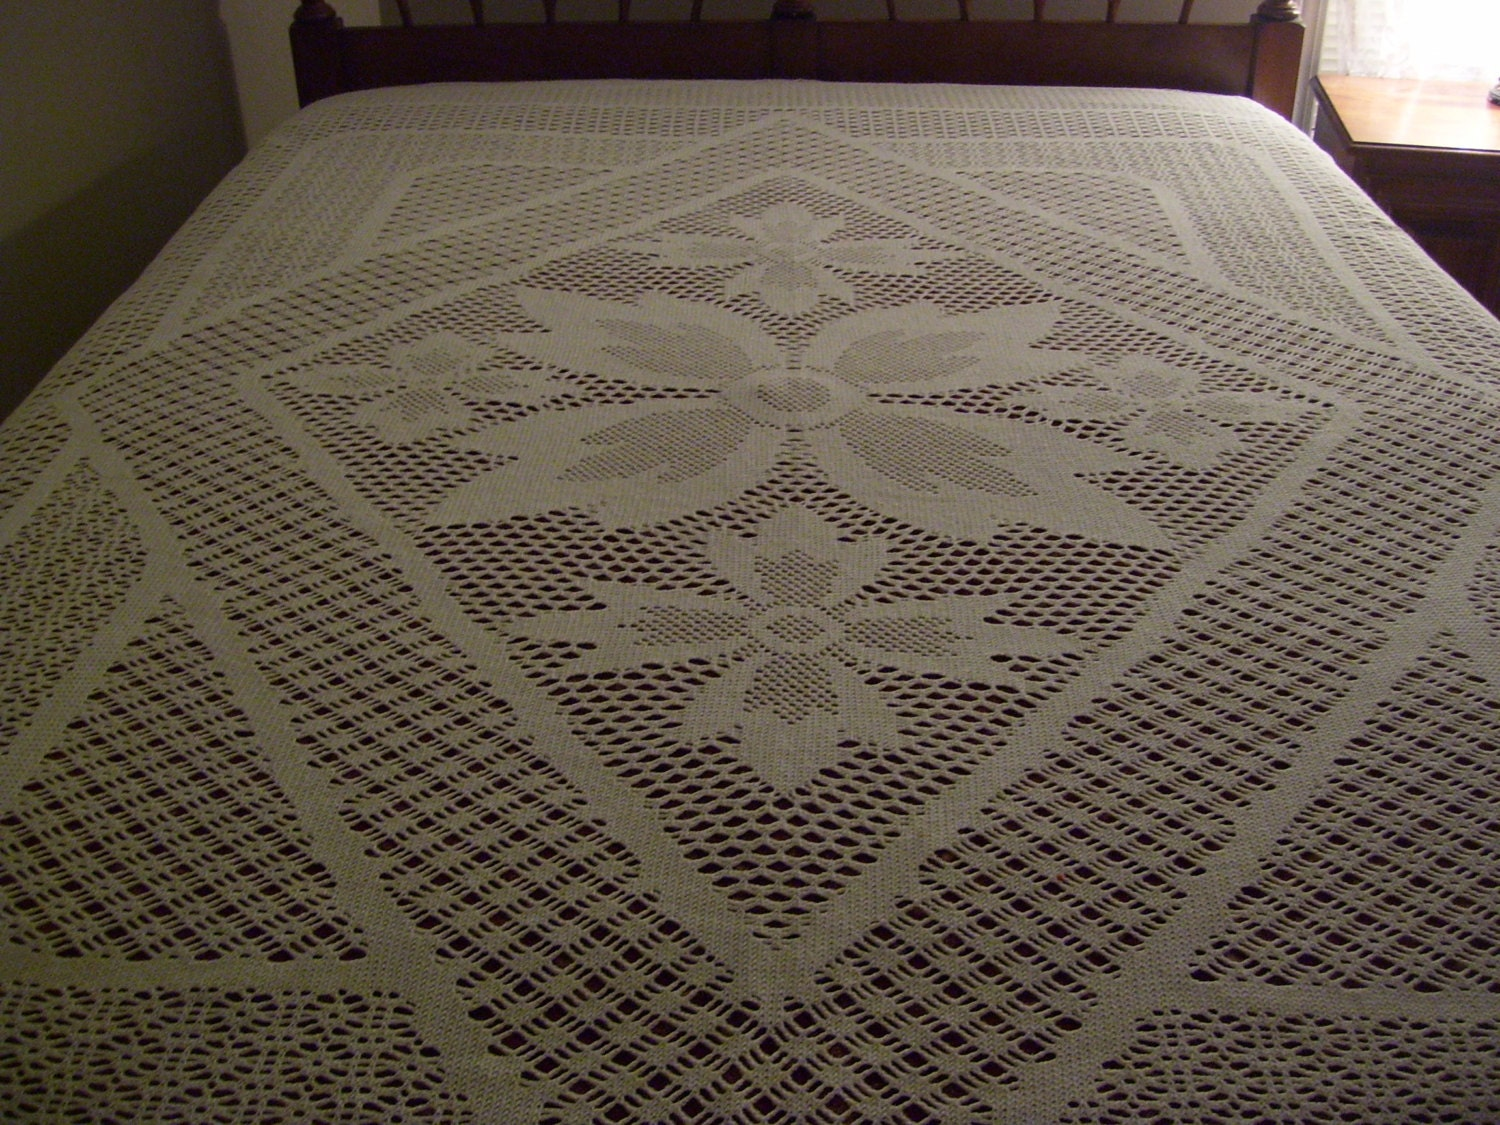 crocheted bedspread coverlet full size 86x99 inches. Black Bedroom Furniture Sets. Home Design Ideas